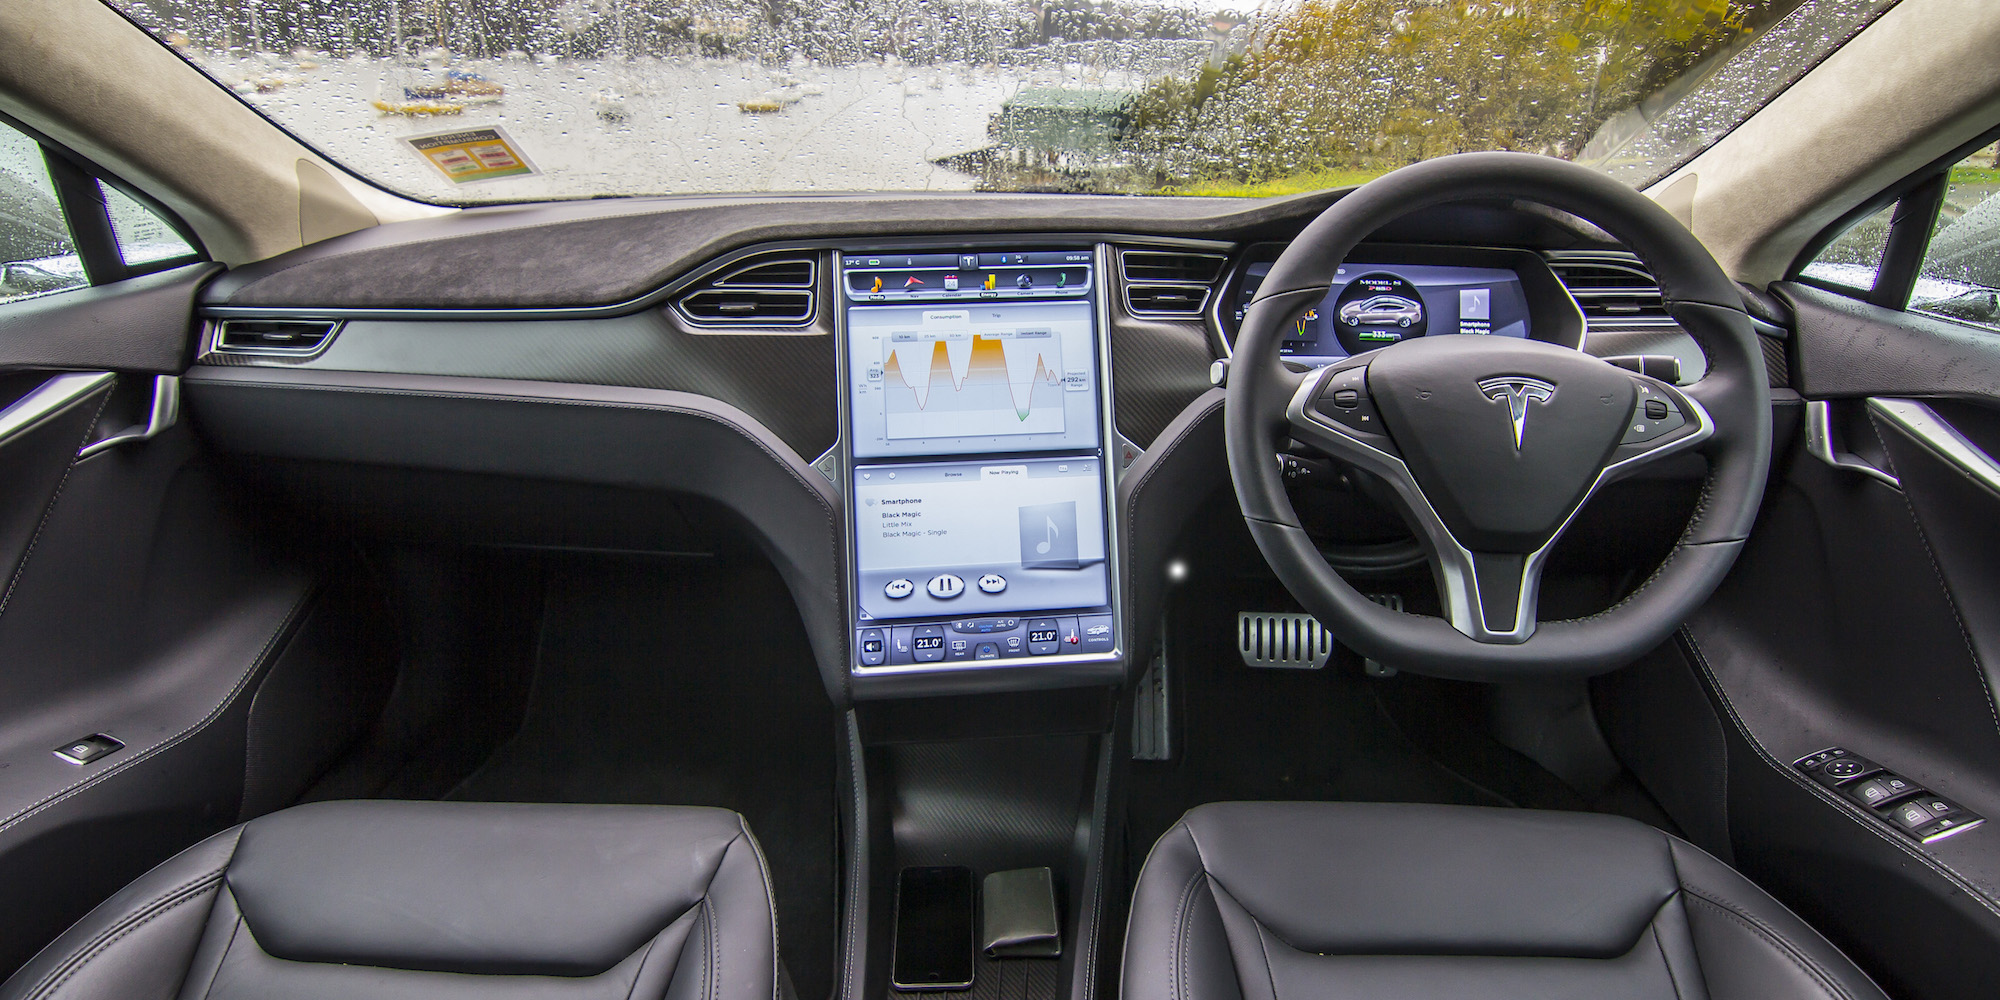 2015 Tesla Model S P85d Dashboard And Head Unit Interior (Photo 25 of 37)